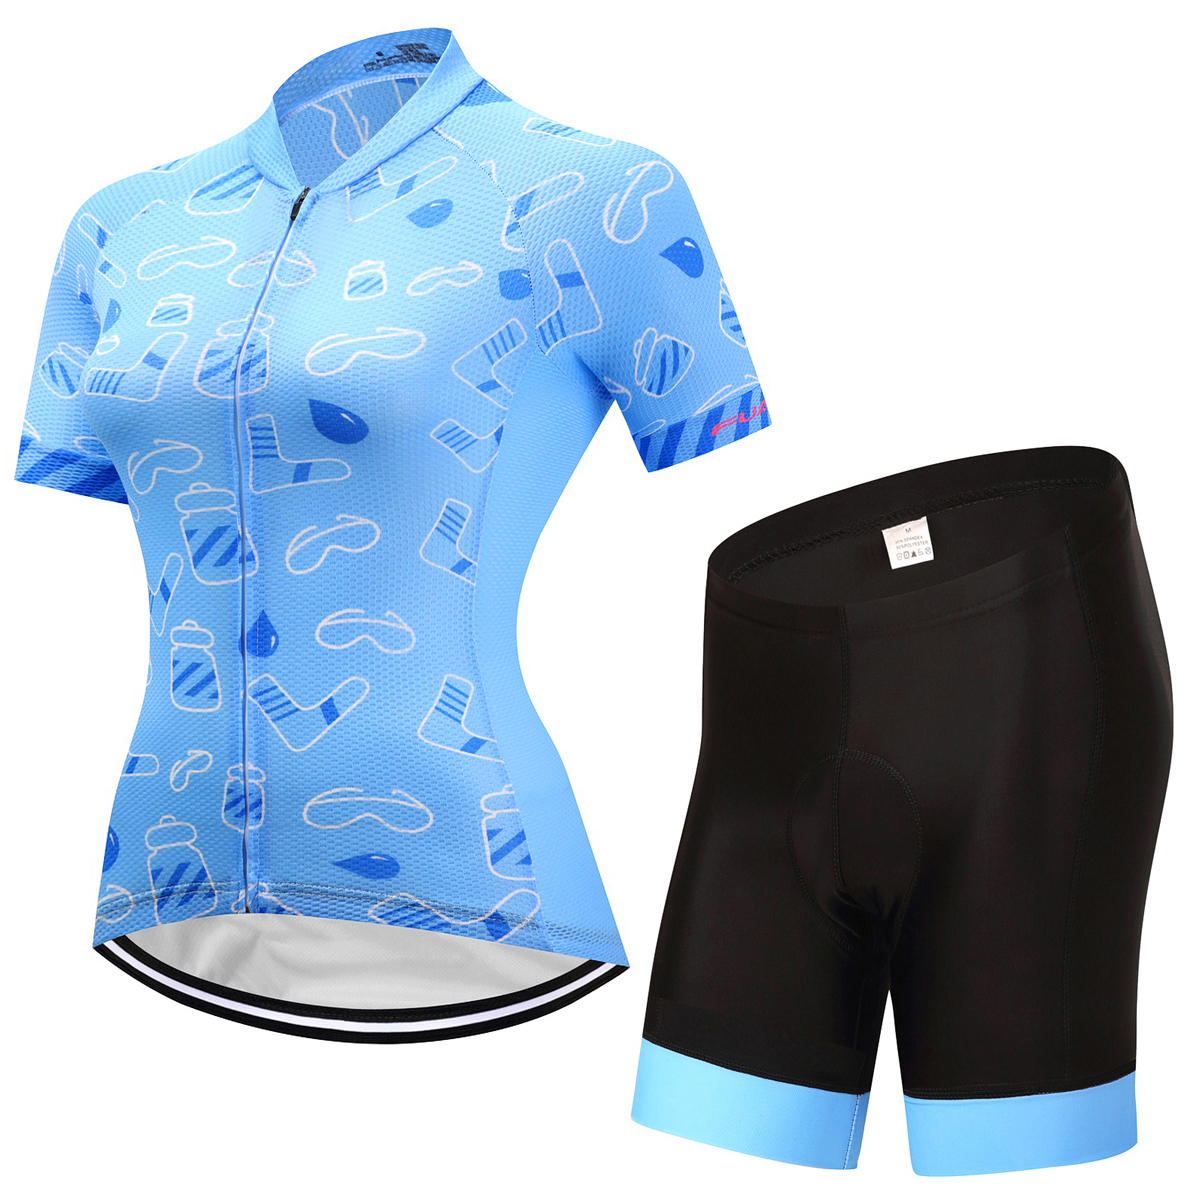 FUALRNY Mens Cycling Jersey Set Short Sleeve Tops and Padded Shorts Bike  Biking Clothing Bicycle Cloth 58022f627